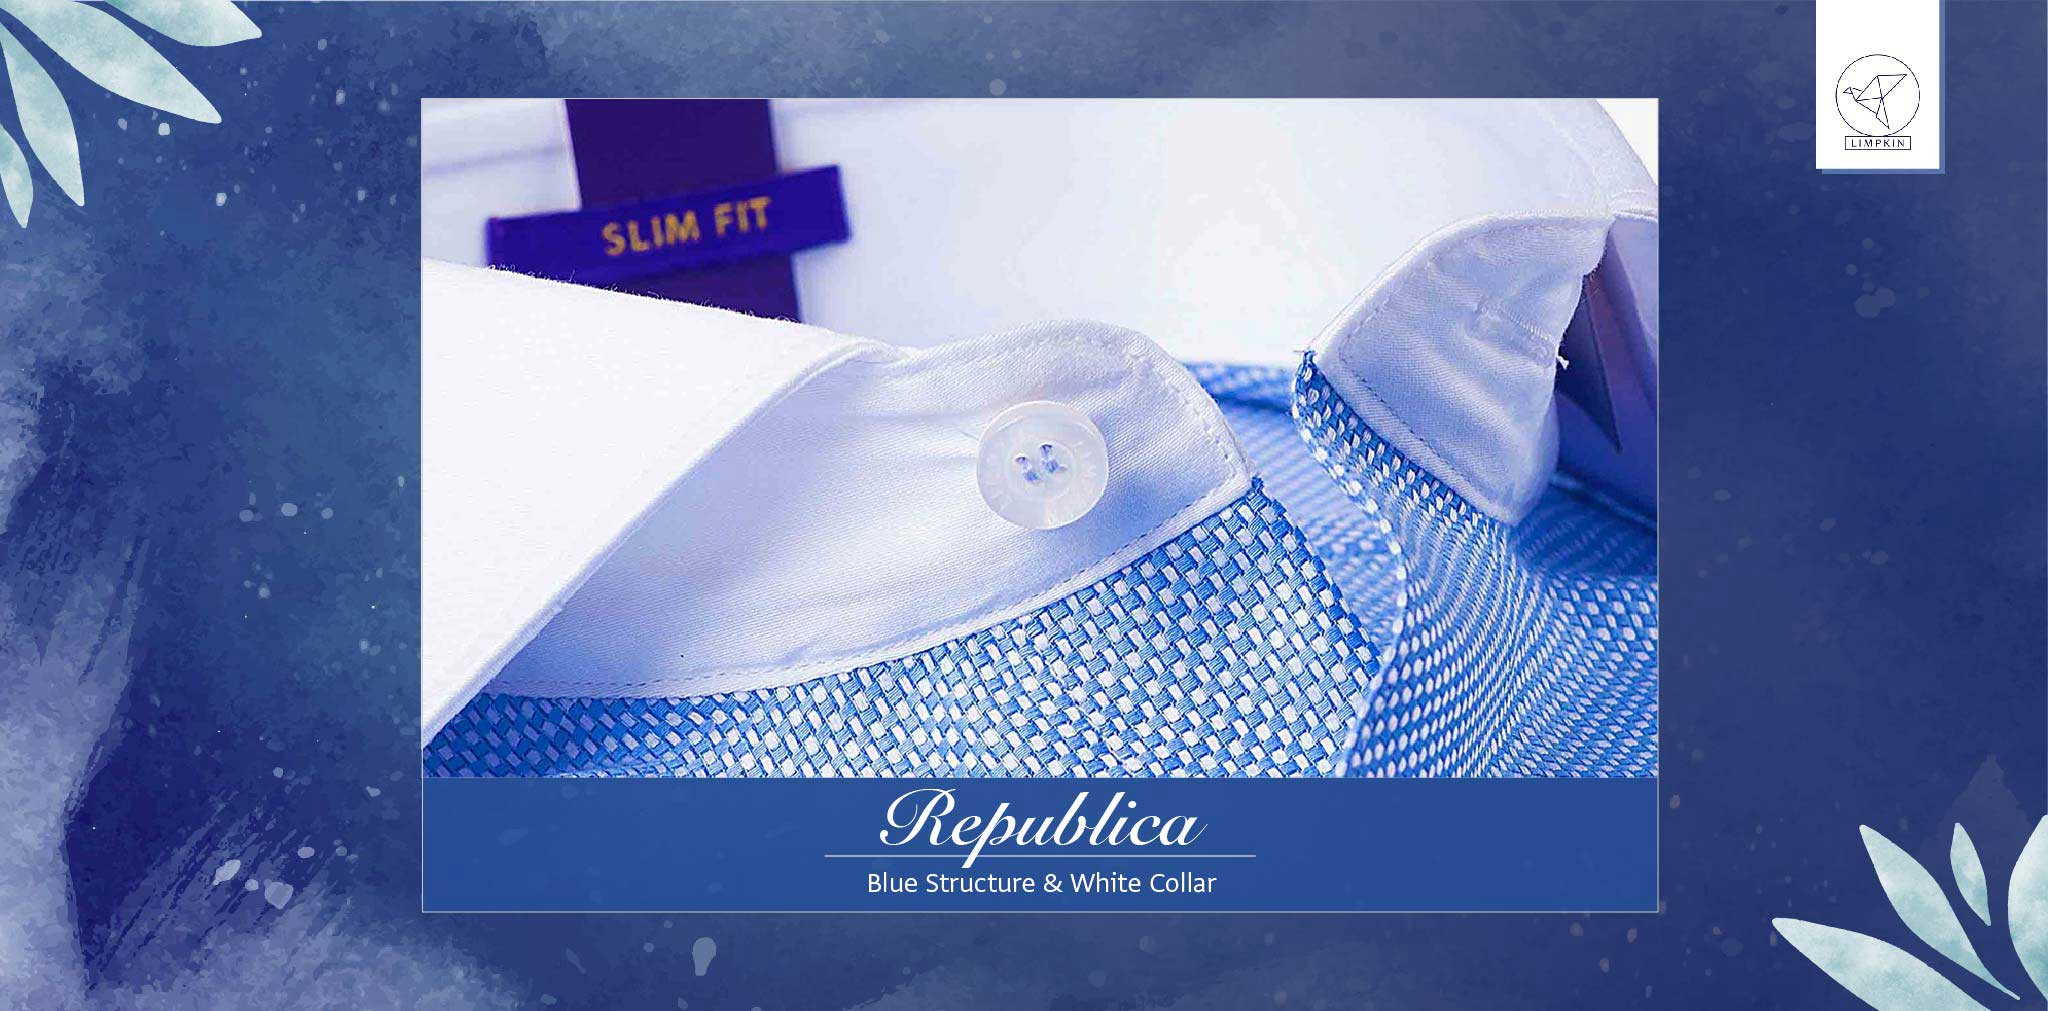 Republica- Blue Structure with White Collar- 2 Ply Pure Egyptian Giza Cotton- Delivery from 17th May - Banner